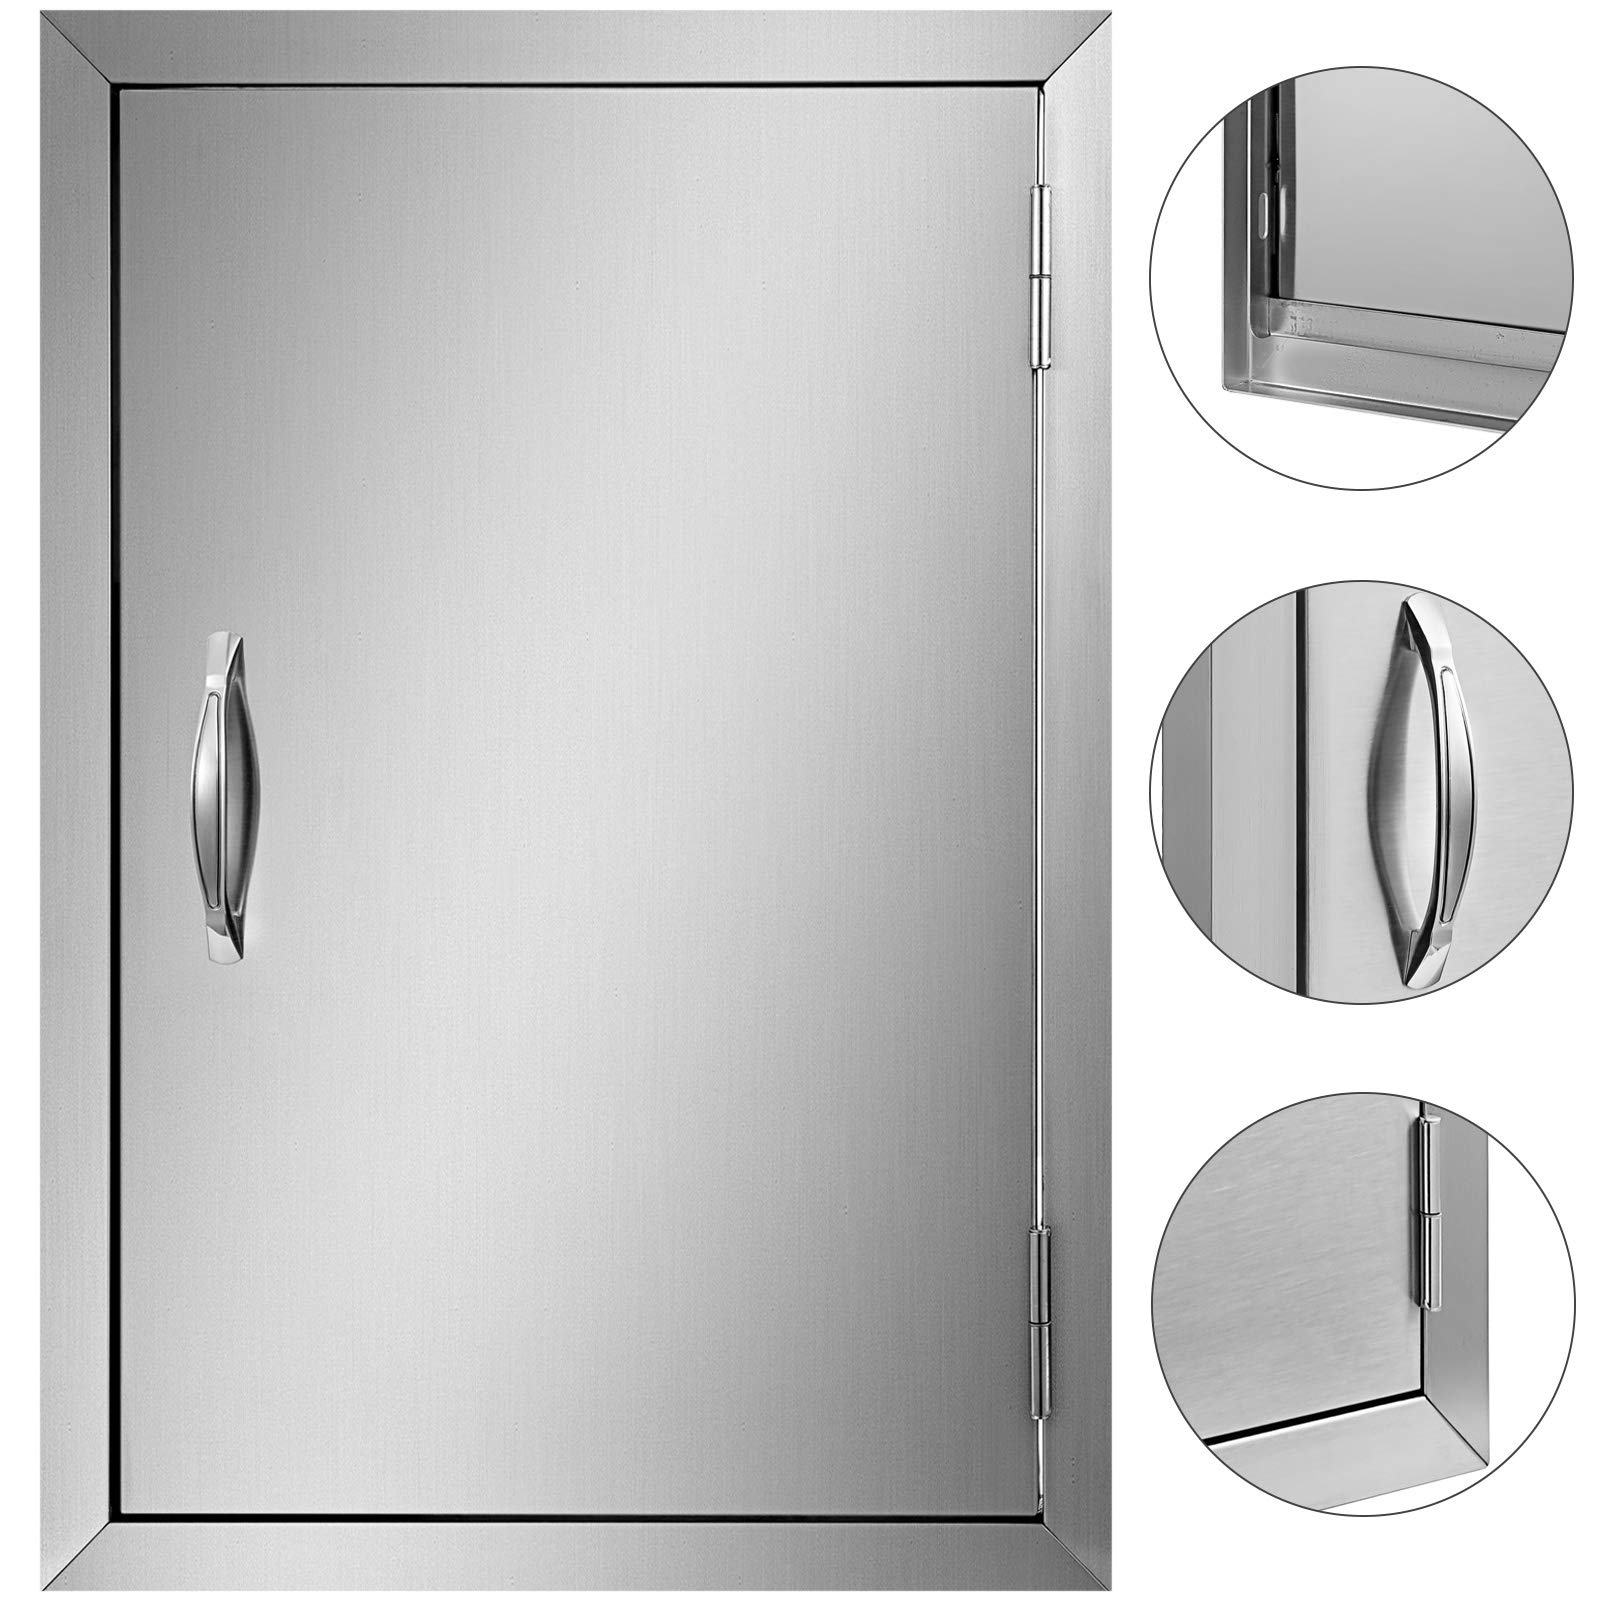 Mophorn Double Wall BBQ Access Door 17 Width x 24 Height Inch BBQ Island Door Brushed Stainless Steel Perfect for Outdoor Kitchen or BBQ Island